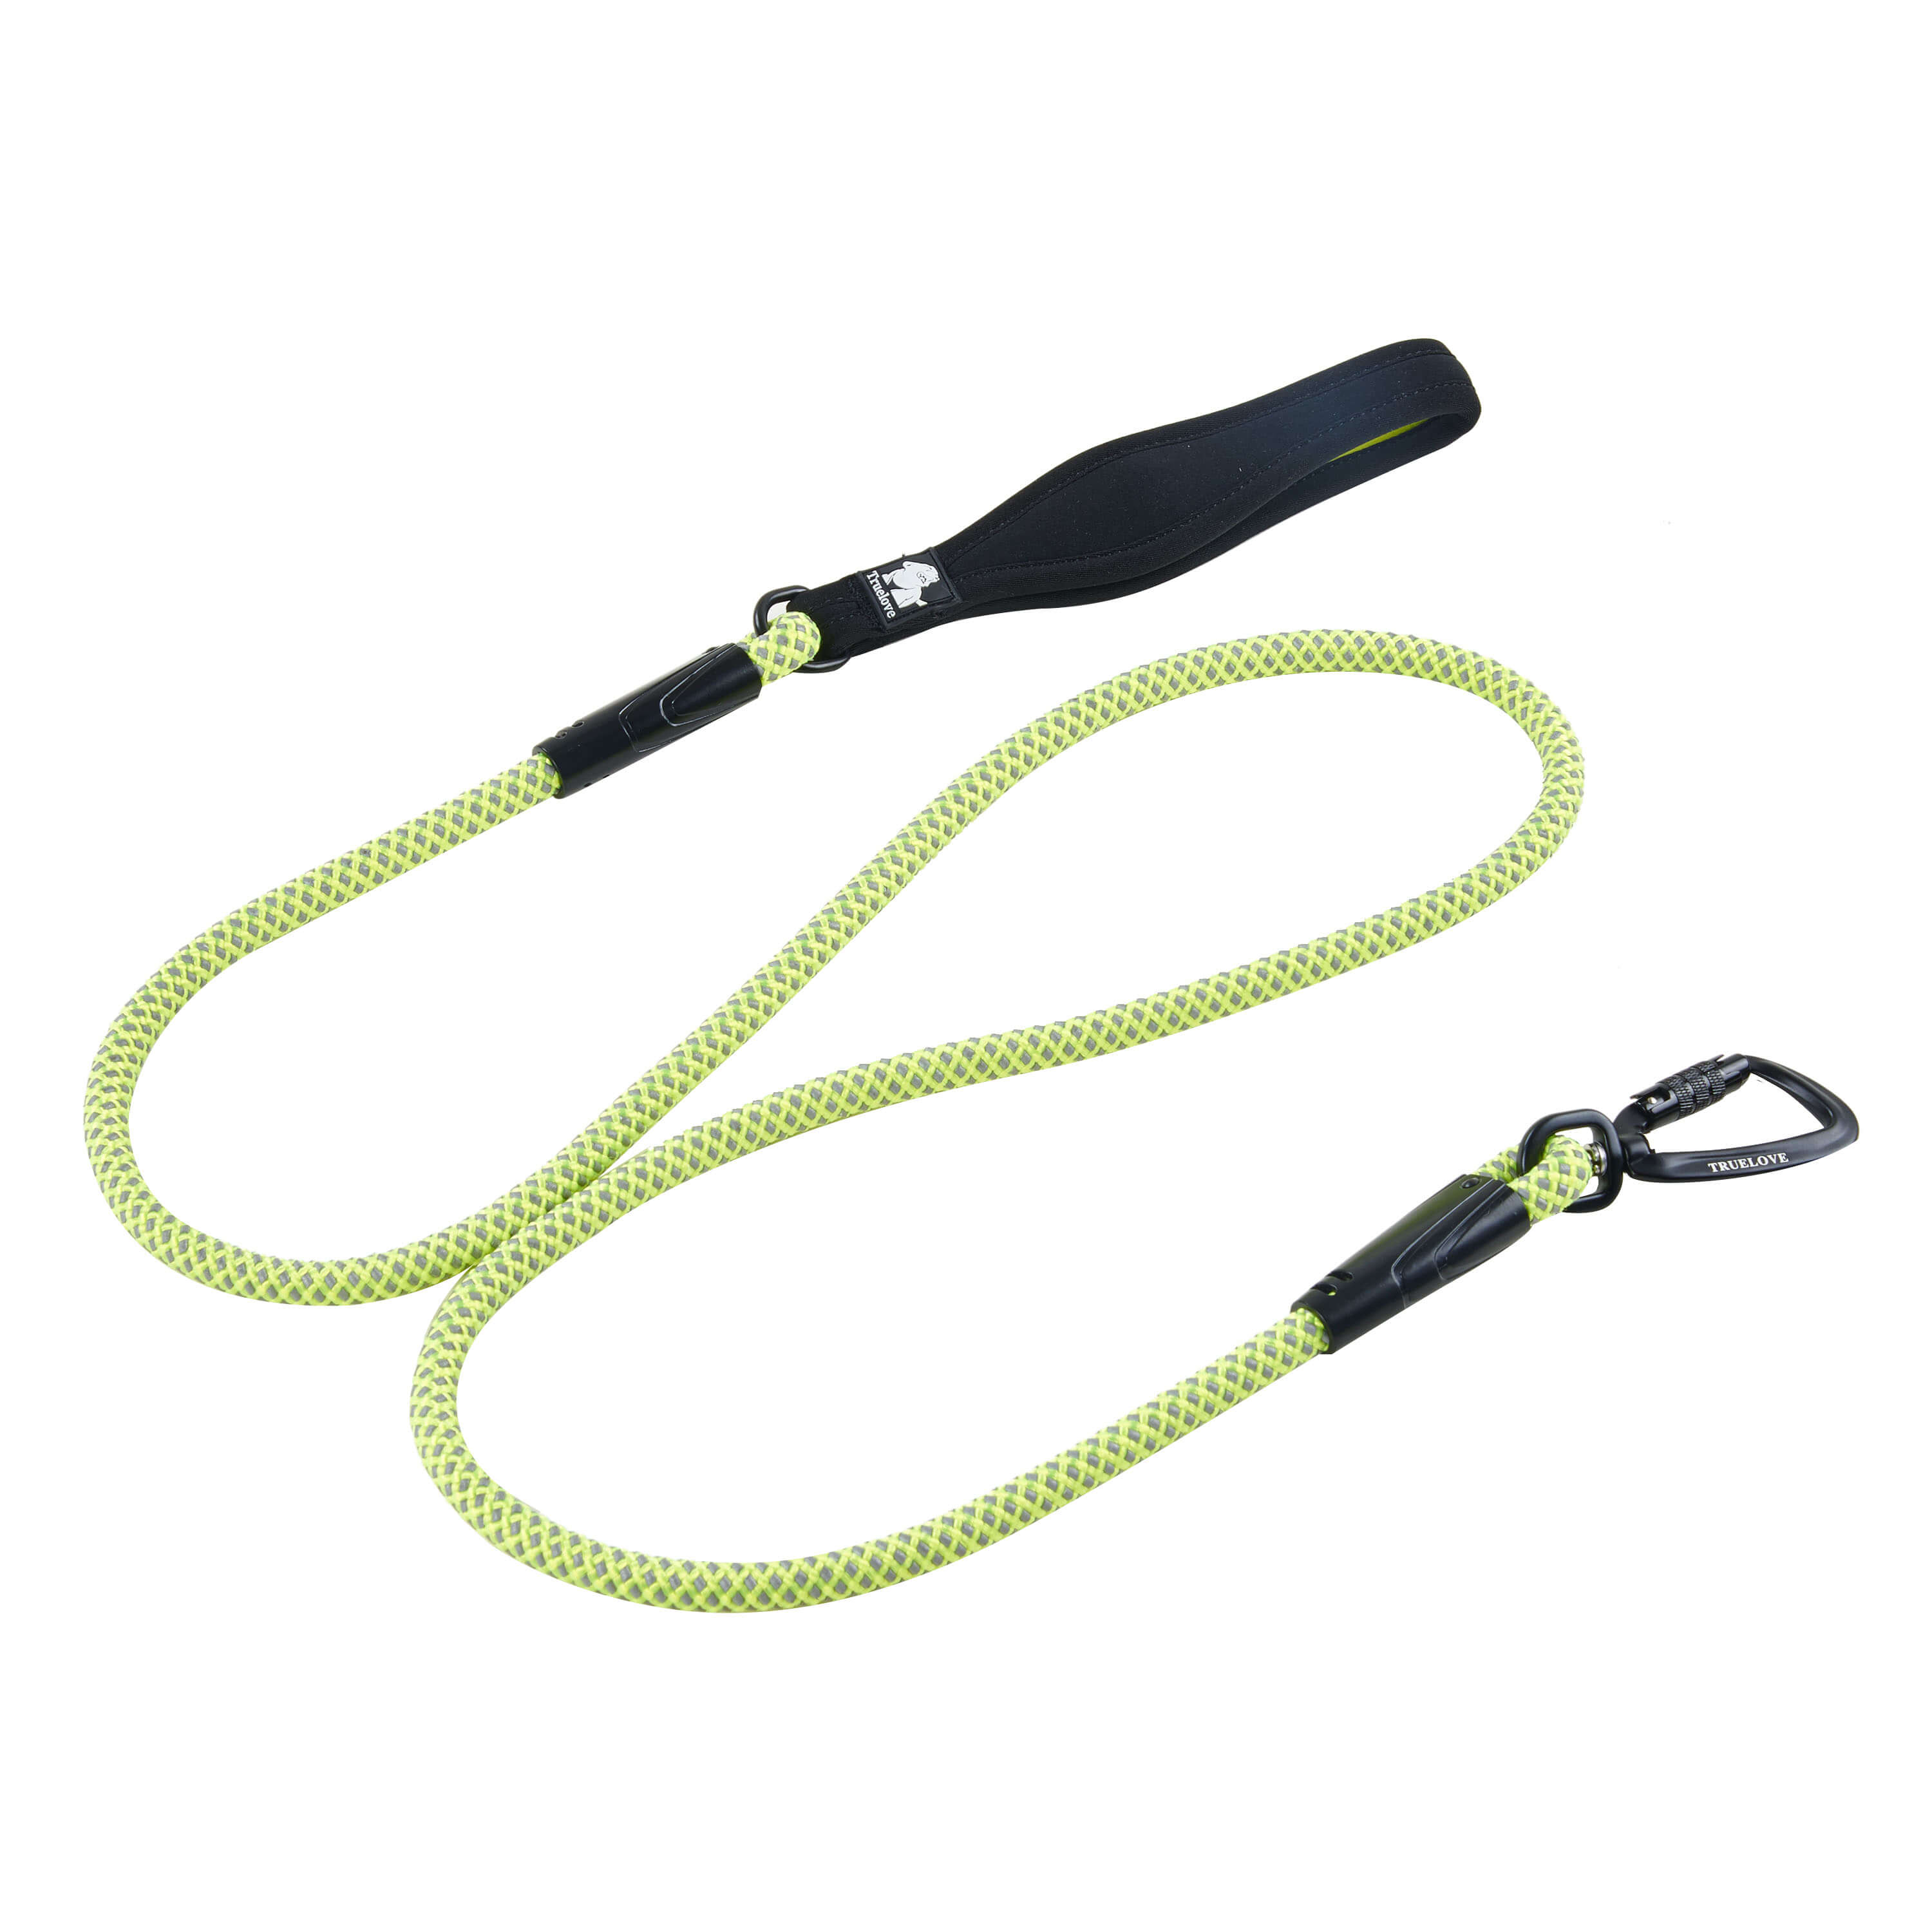 [US Direct] Original Truelove Reflective Rope Dog Leash, Training Leash with Secure Locking Carabiner for Medium & Large Dogs (5.9 ft, M, Green) Green_M